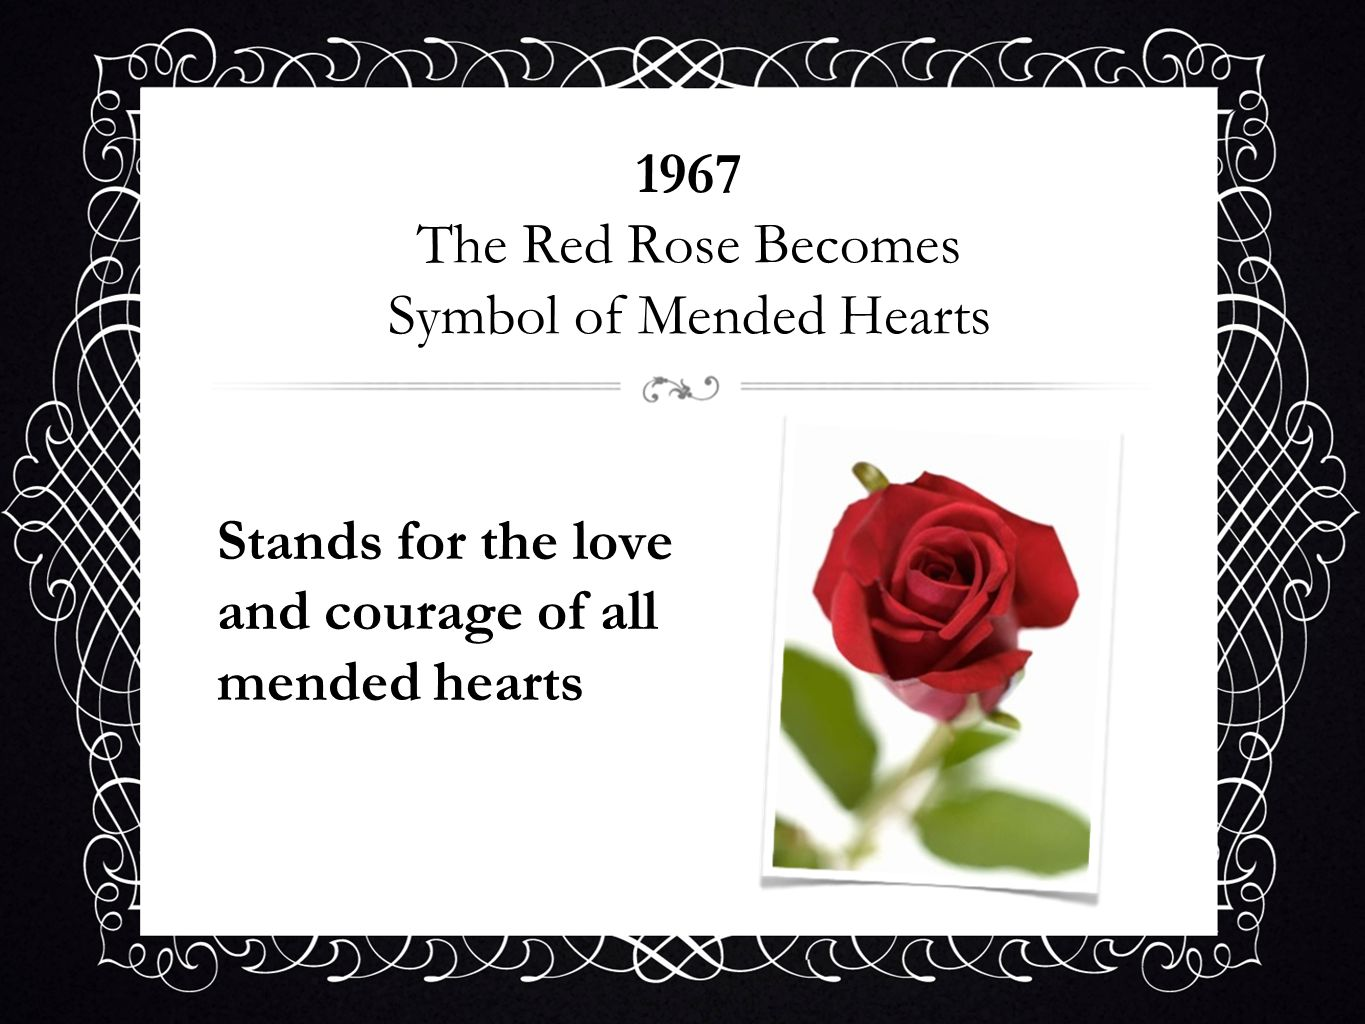 1967 The Red Rose Becomes Symbol of Mended Hearts